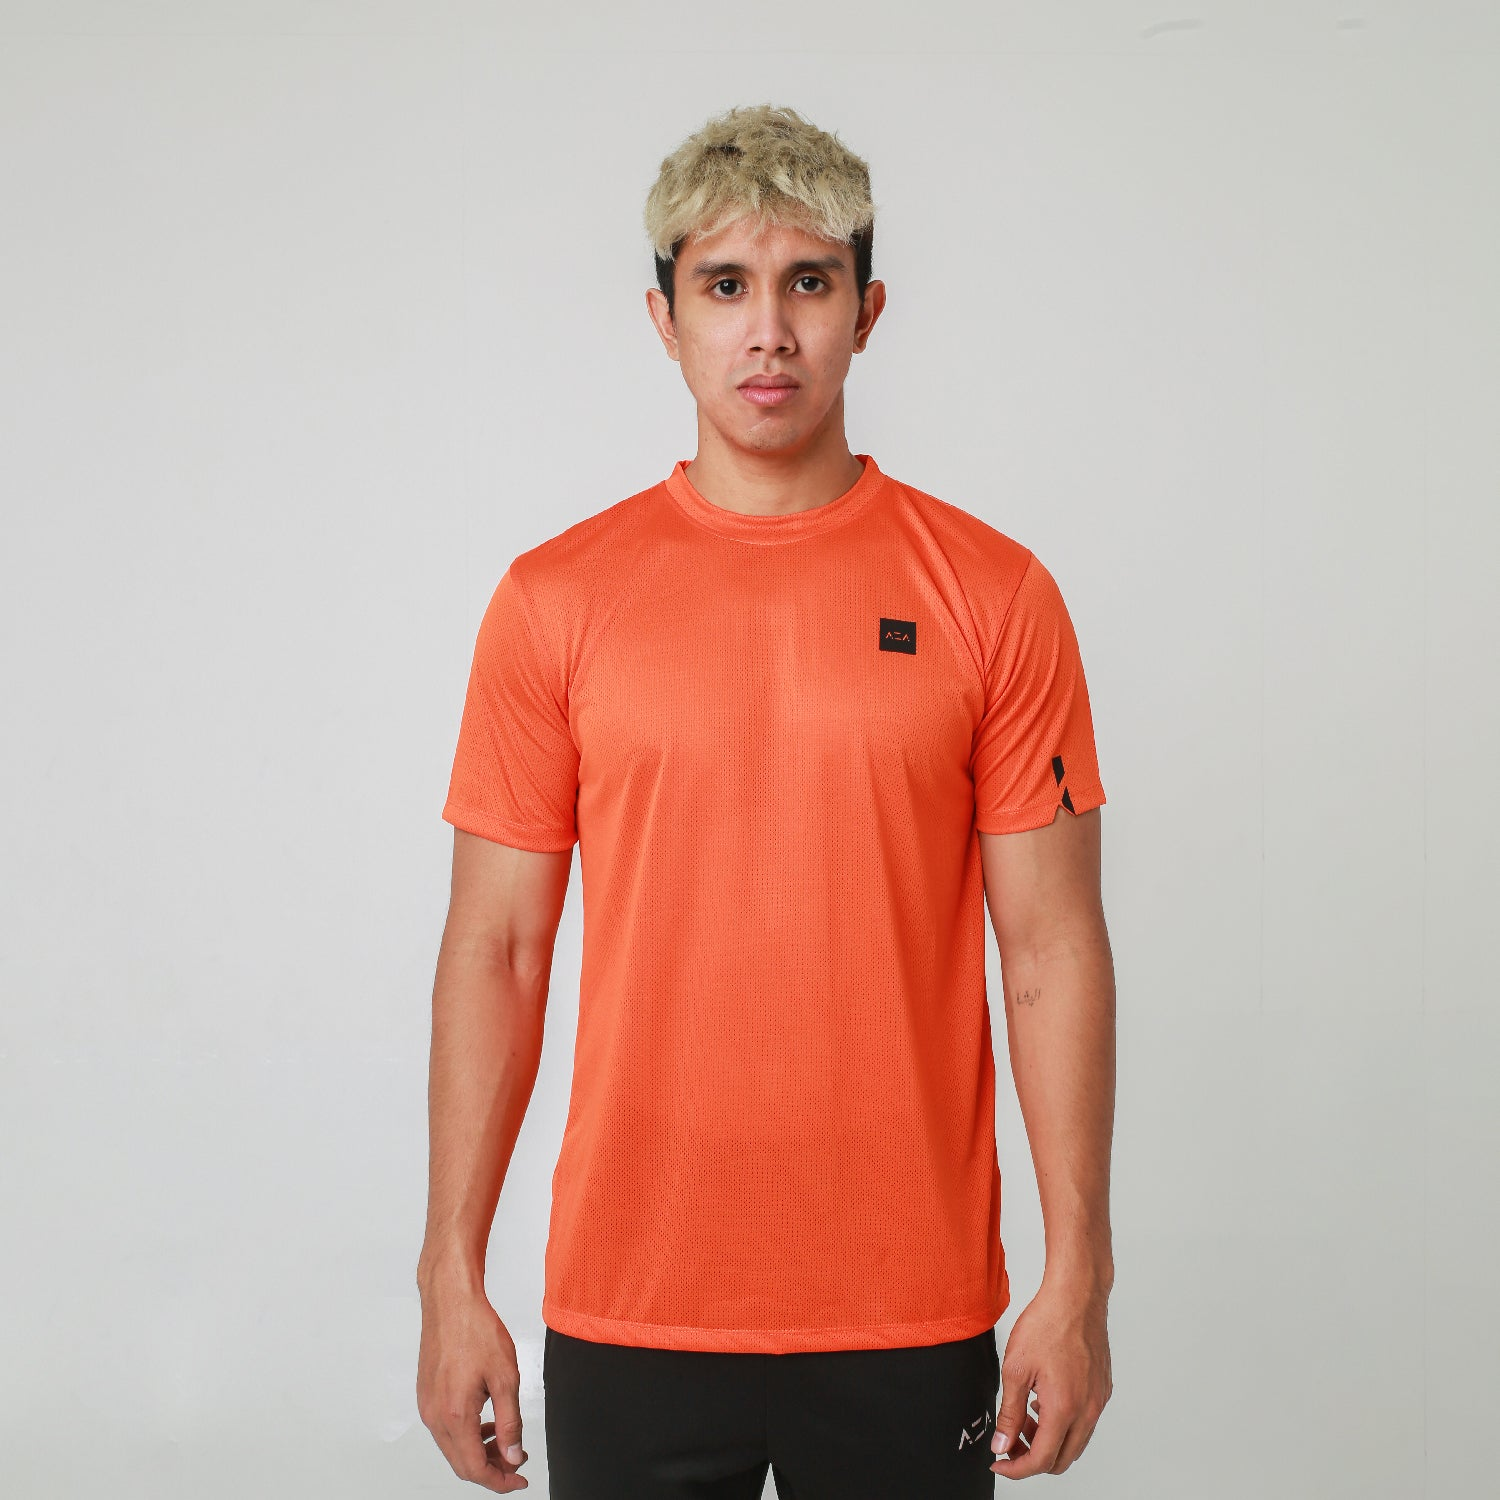 AZA Interval Basic T-Shirt - Orange